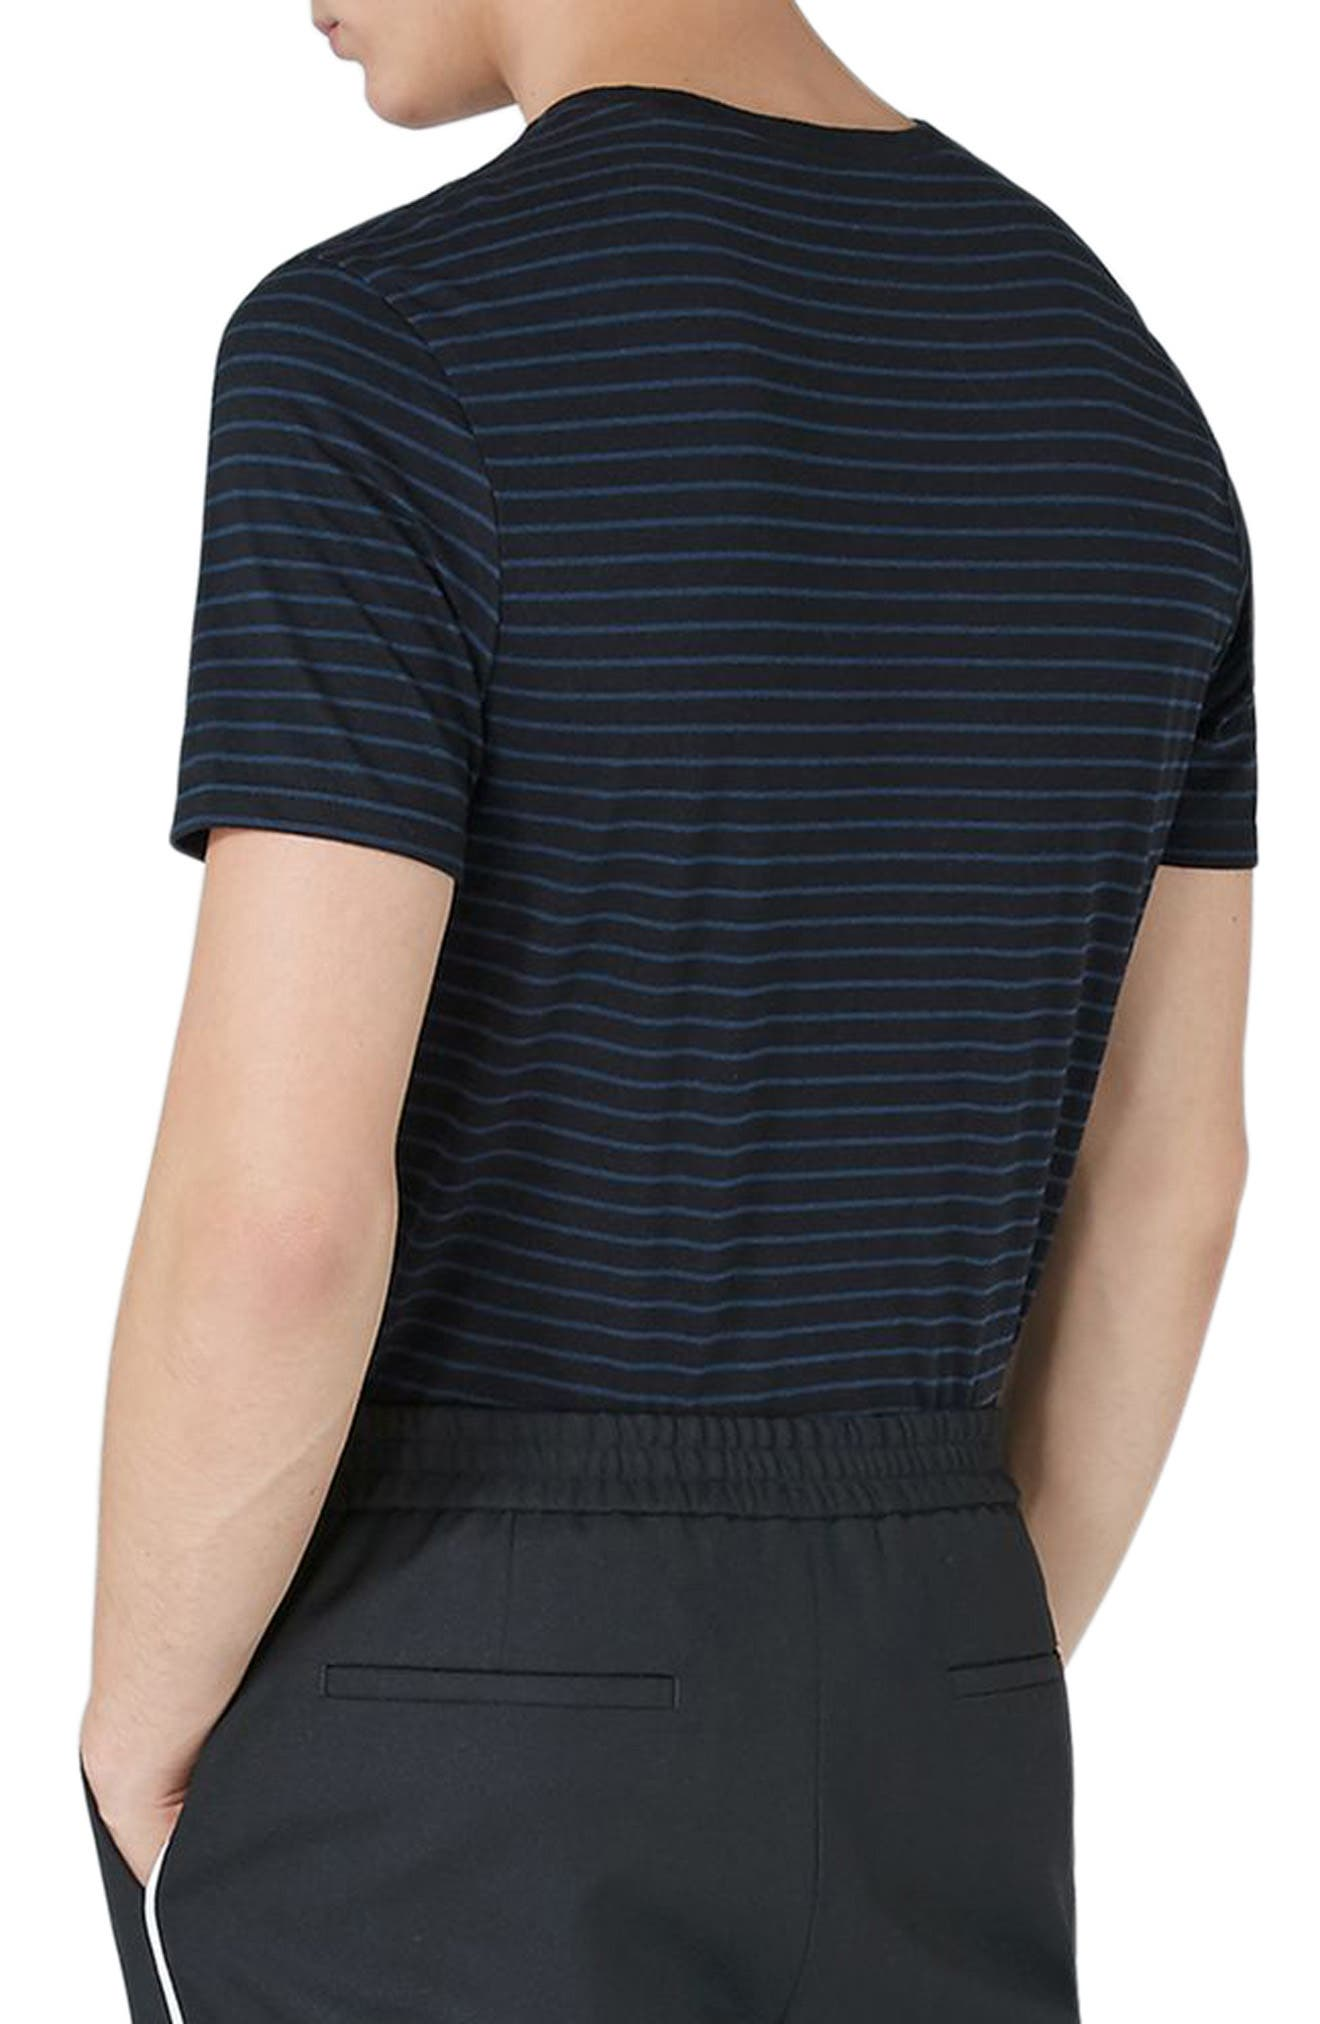 Alternate Image 2  - Topman Slim Fit Stripe T-Shirt